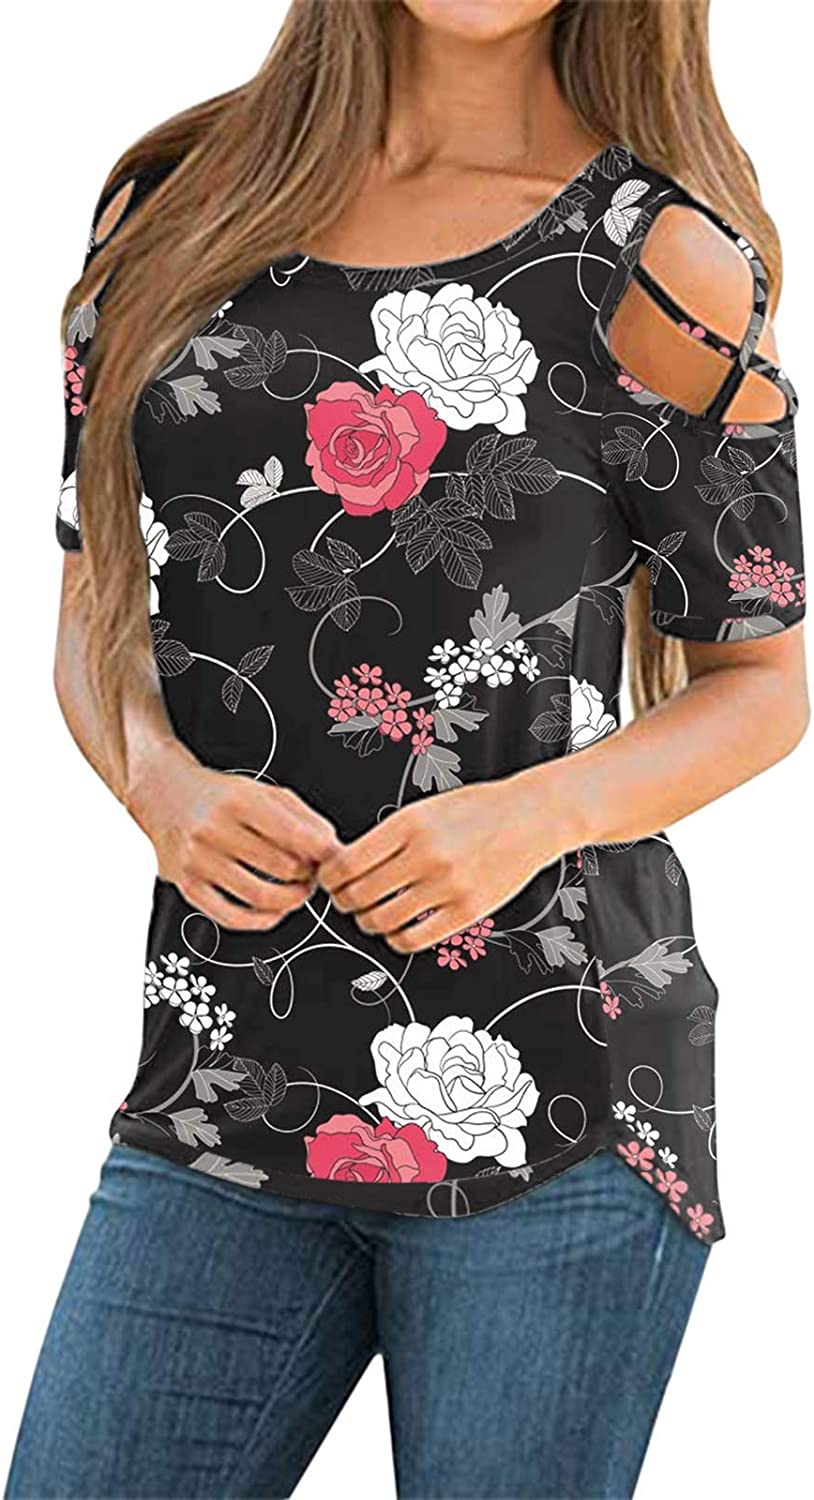 Eduavar Womens Tops,Womens Floral Printed Round Neck Short Sleeve Tshirts Summer Top Strappy Cold Shoulder Tunic Blouses